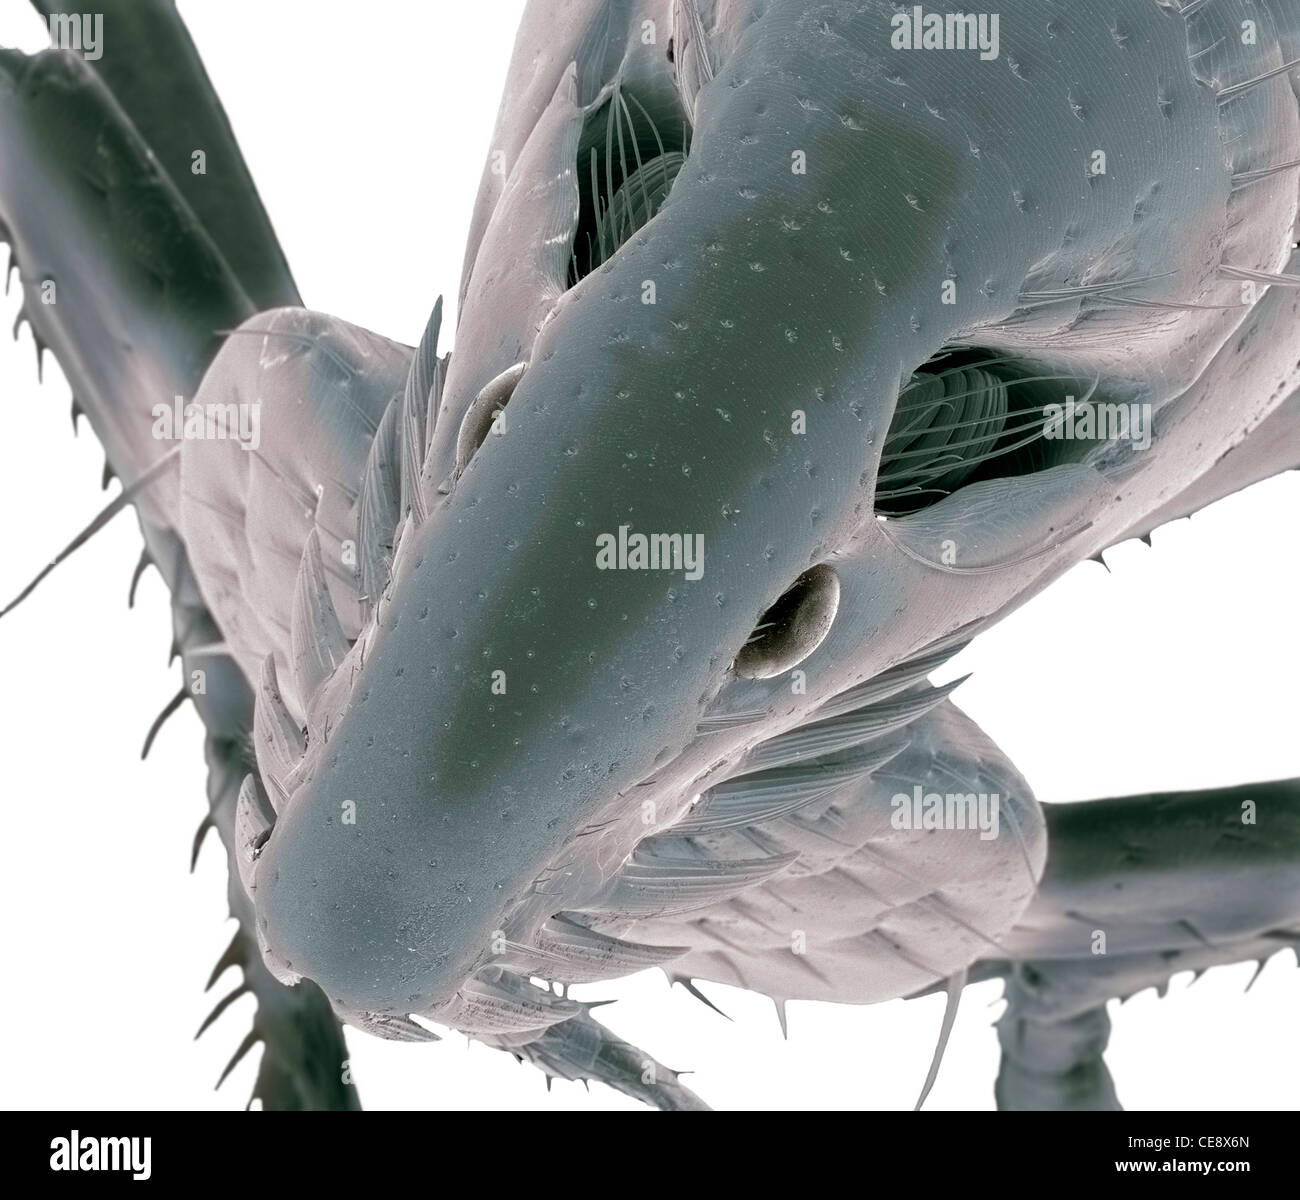 Cat flea Coloured scanning electron micrograph SEM head cat flea Ctenocephalides felis Magnification x130 when printed - Stock Image